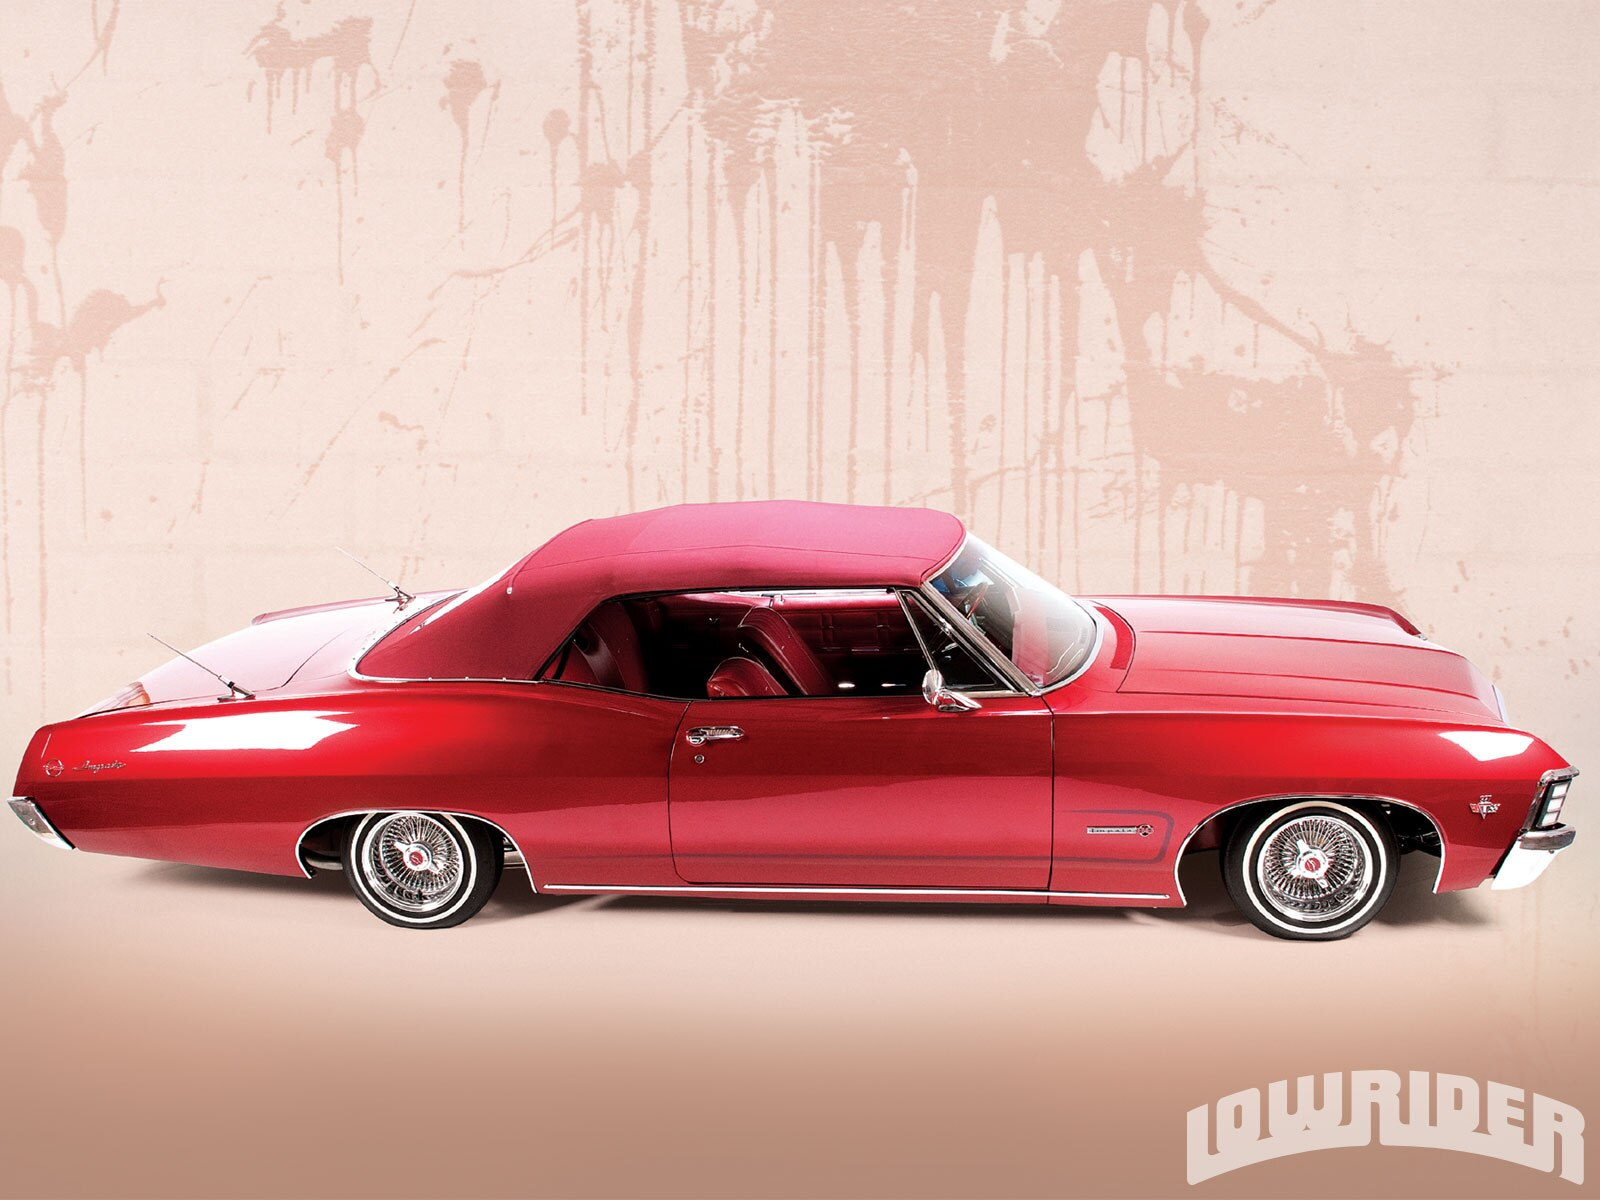 67 Chevy Impala Low Rider